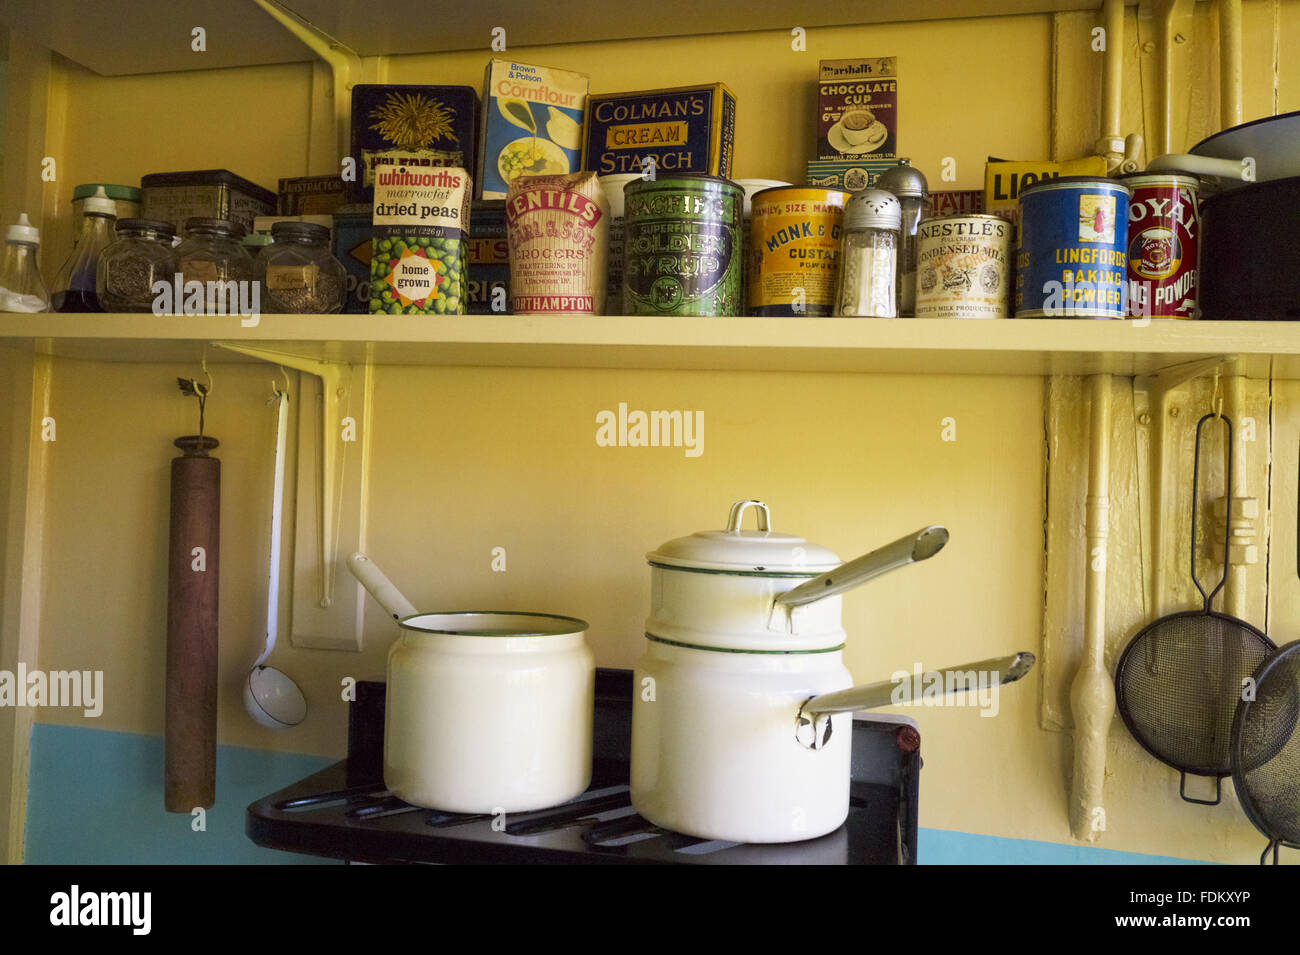 Shelf Above Saucepans On The Cooker In The Kitchen At Mendips The Stock Photo Alamy